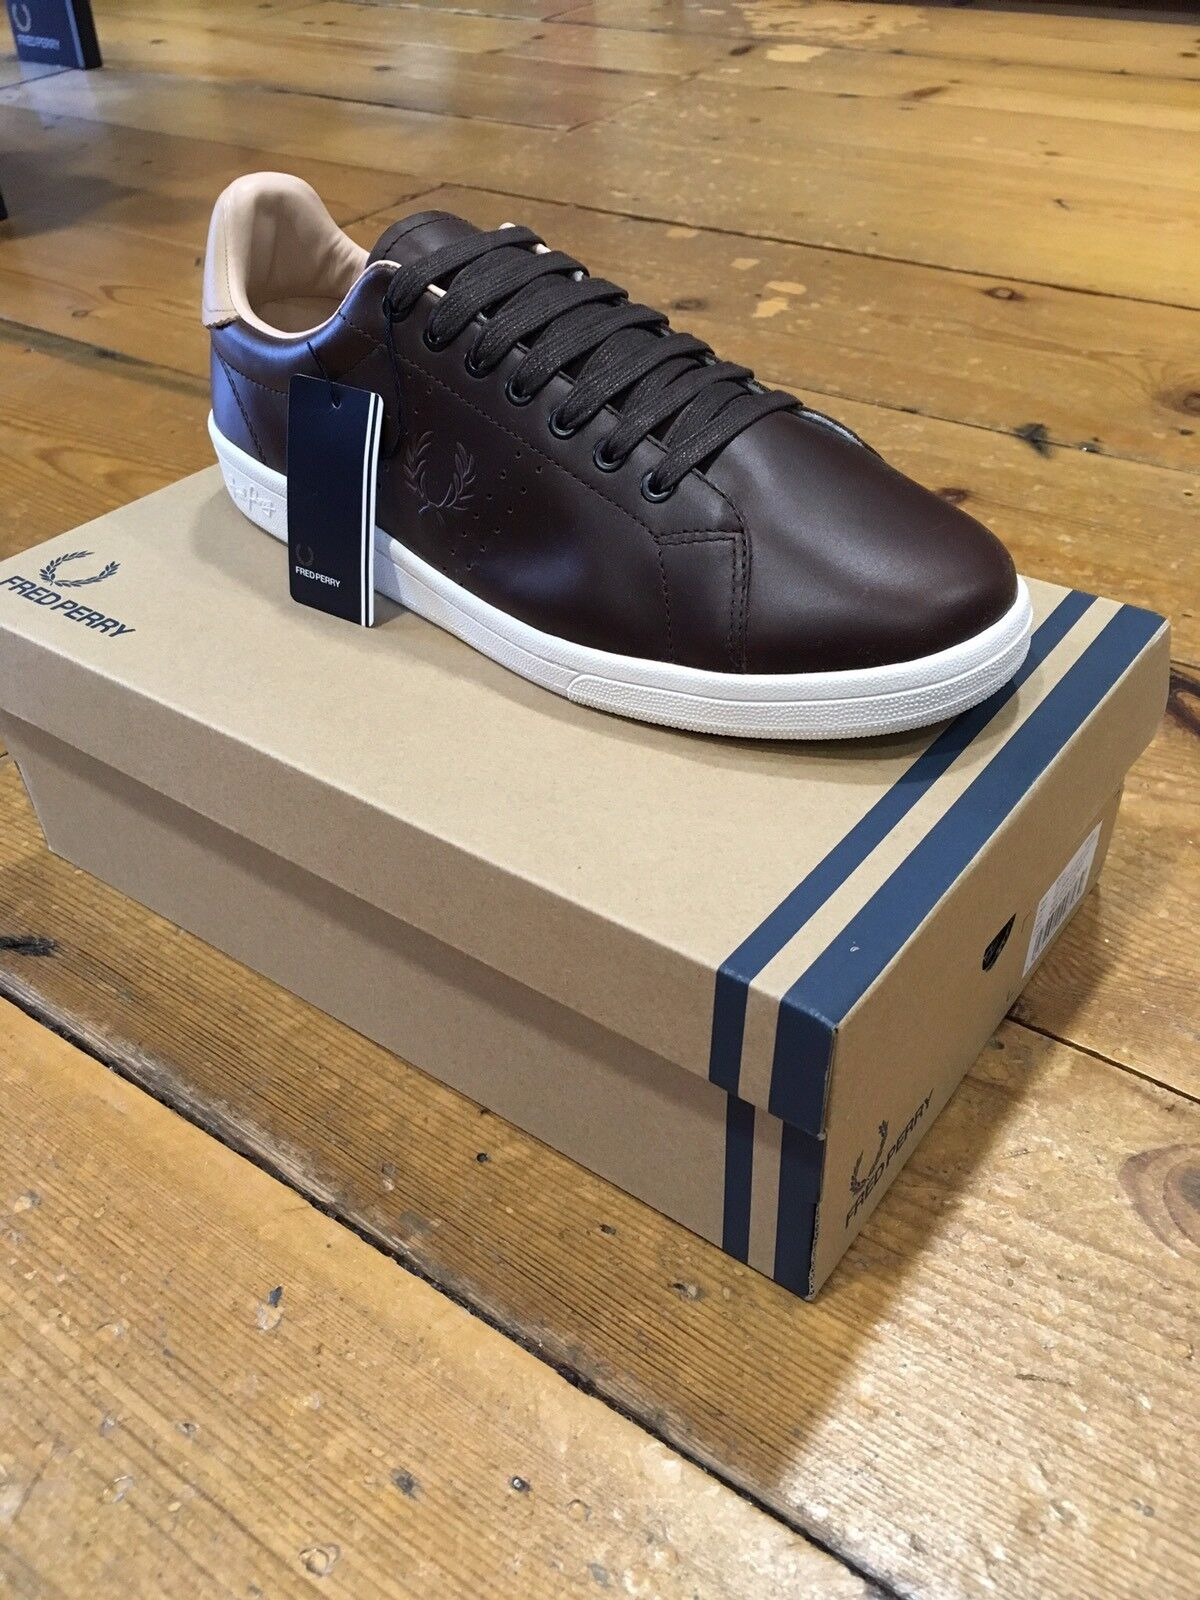 Fred Perry Vintage Tennis Leather Dark Chocolate B3041 - Uk11 EU 46